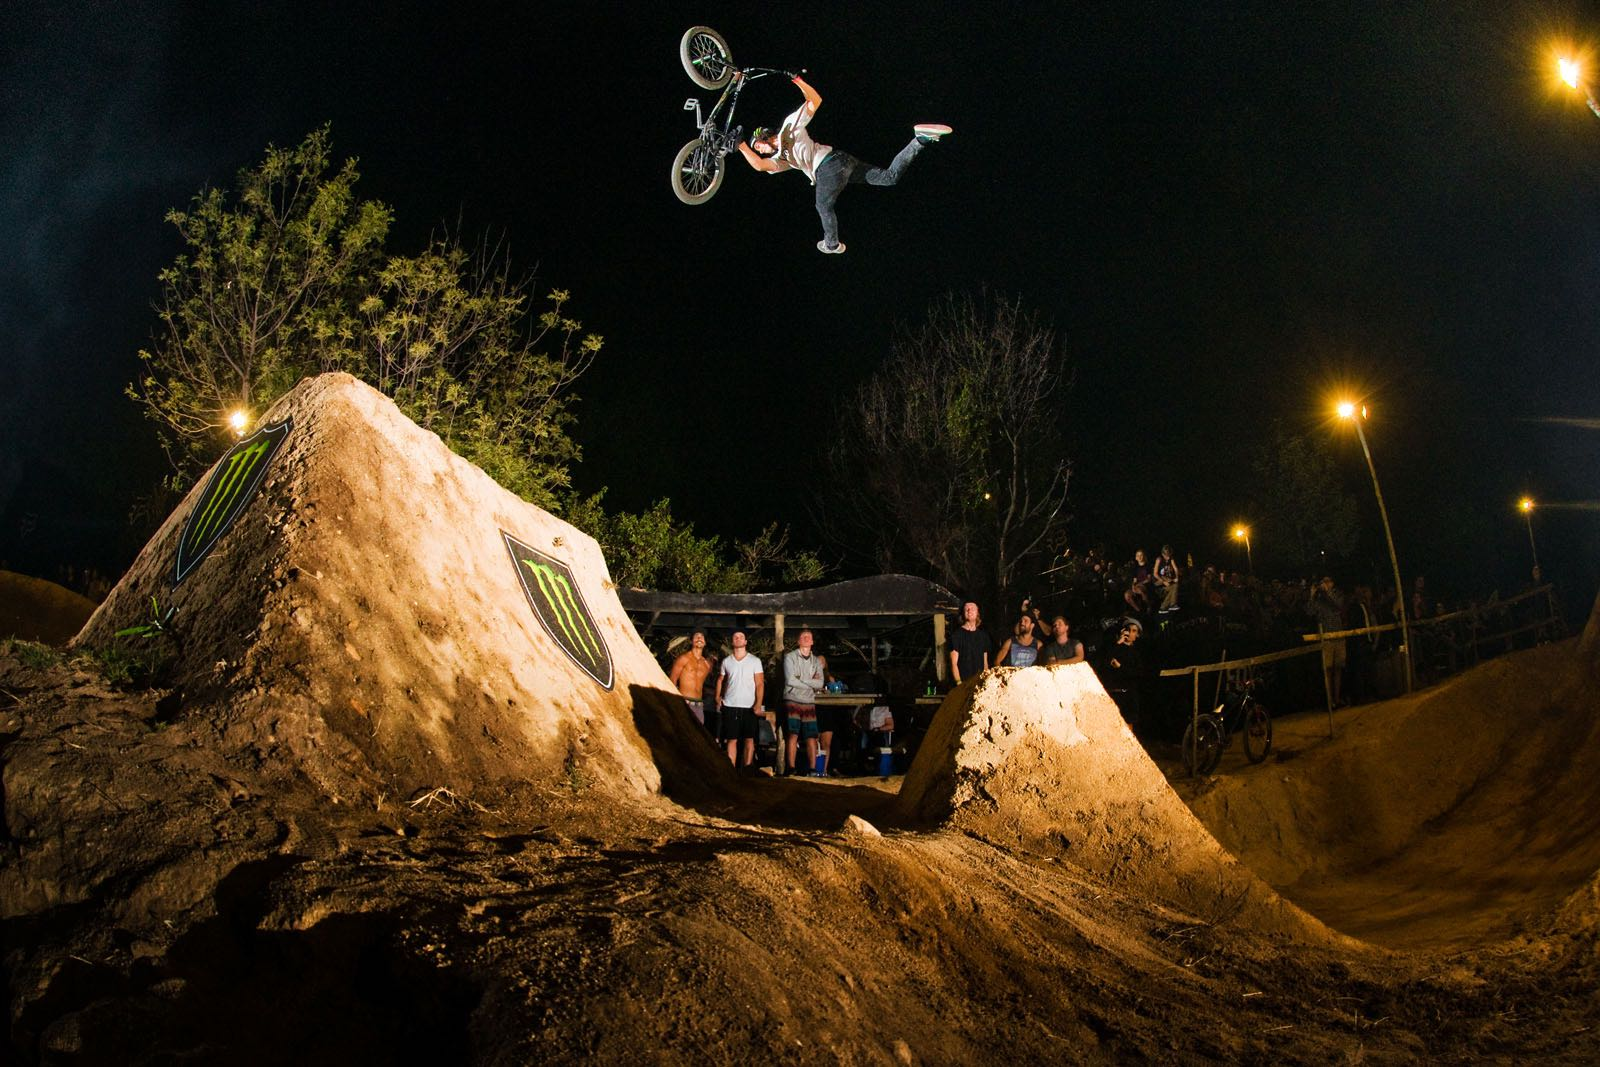 BMX riders competing at The Night Harvest BMX and MTB Dirt Jump competition